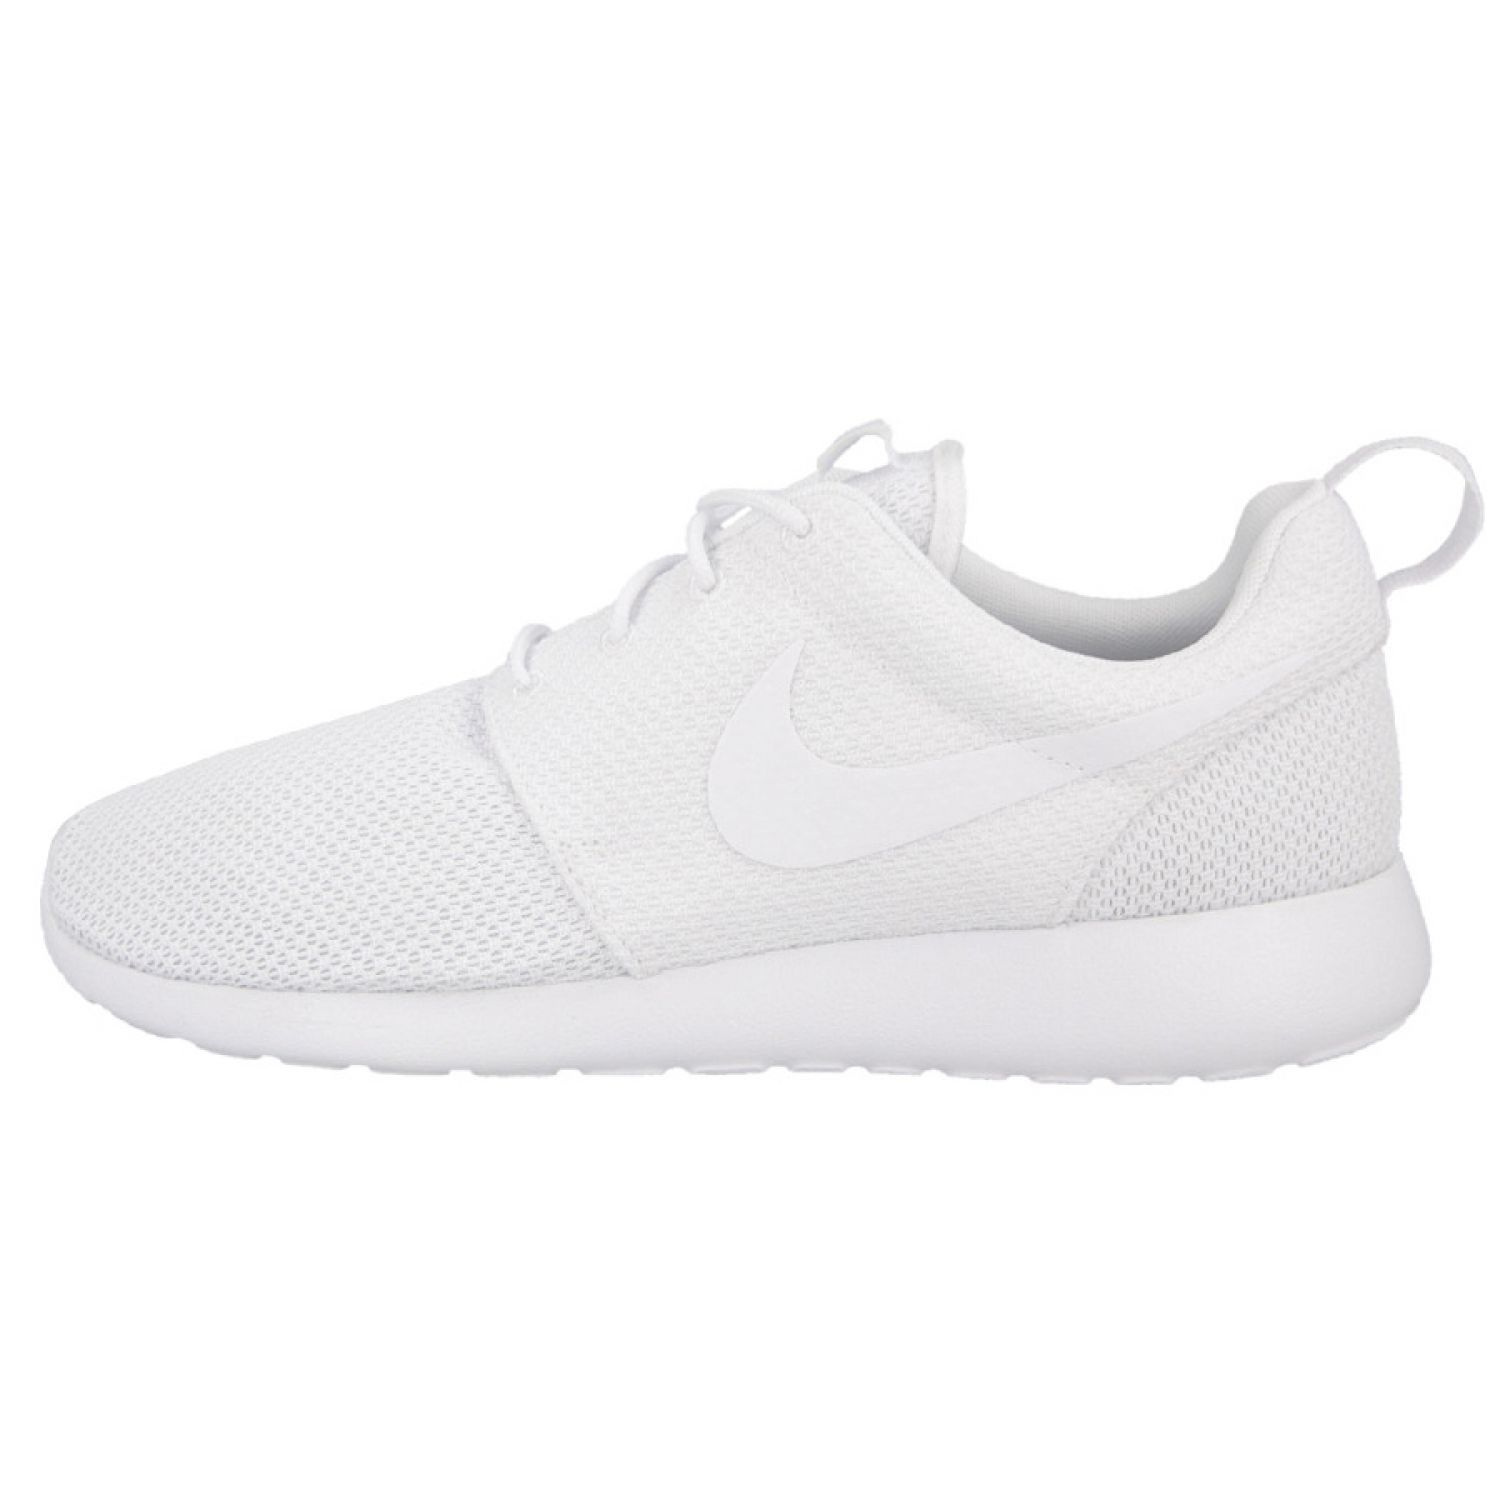 nike roshe one men